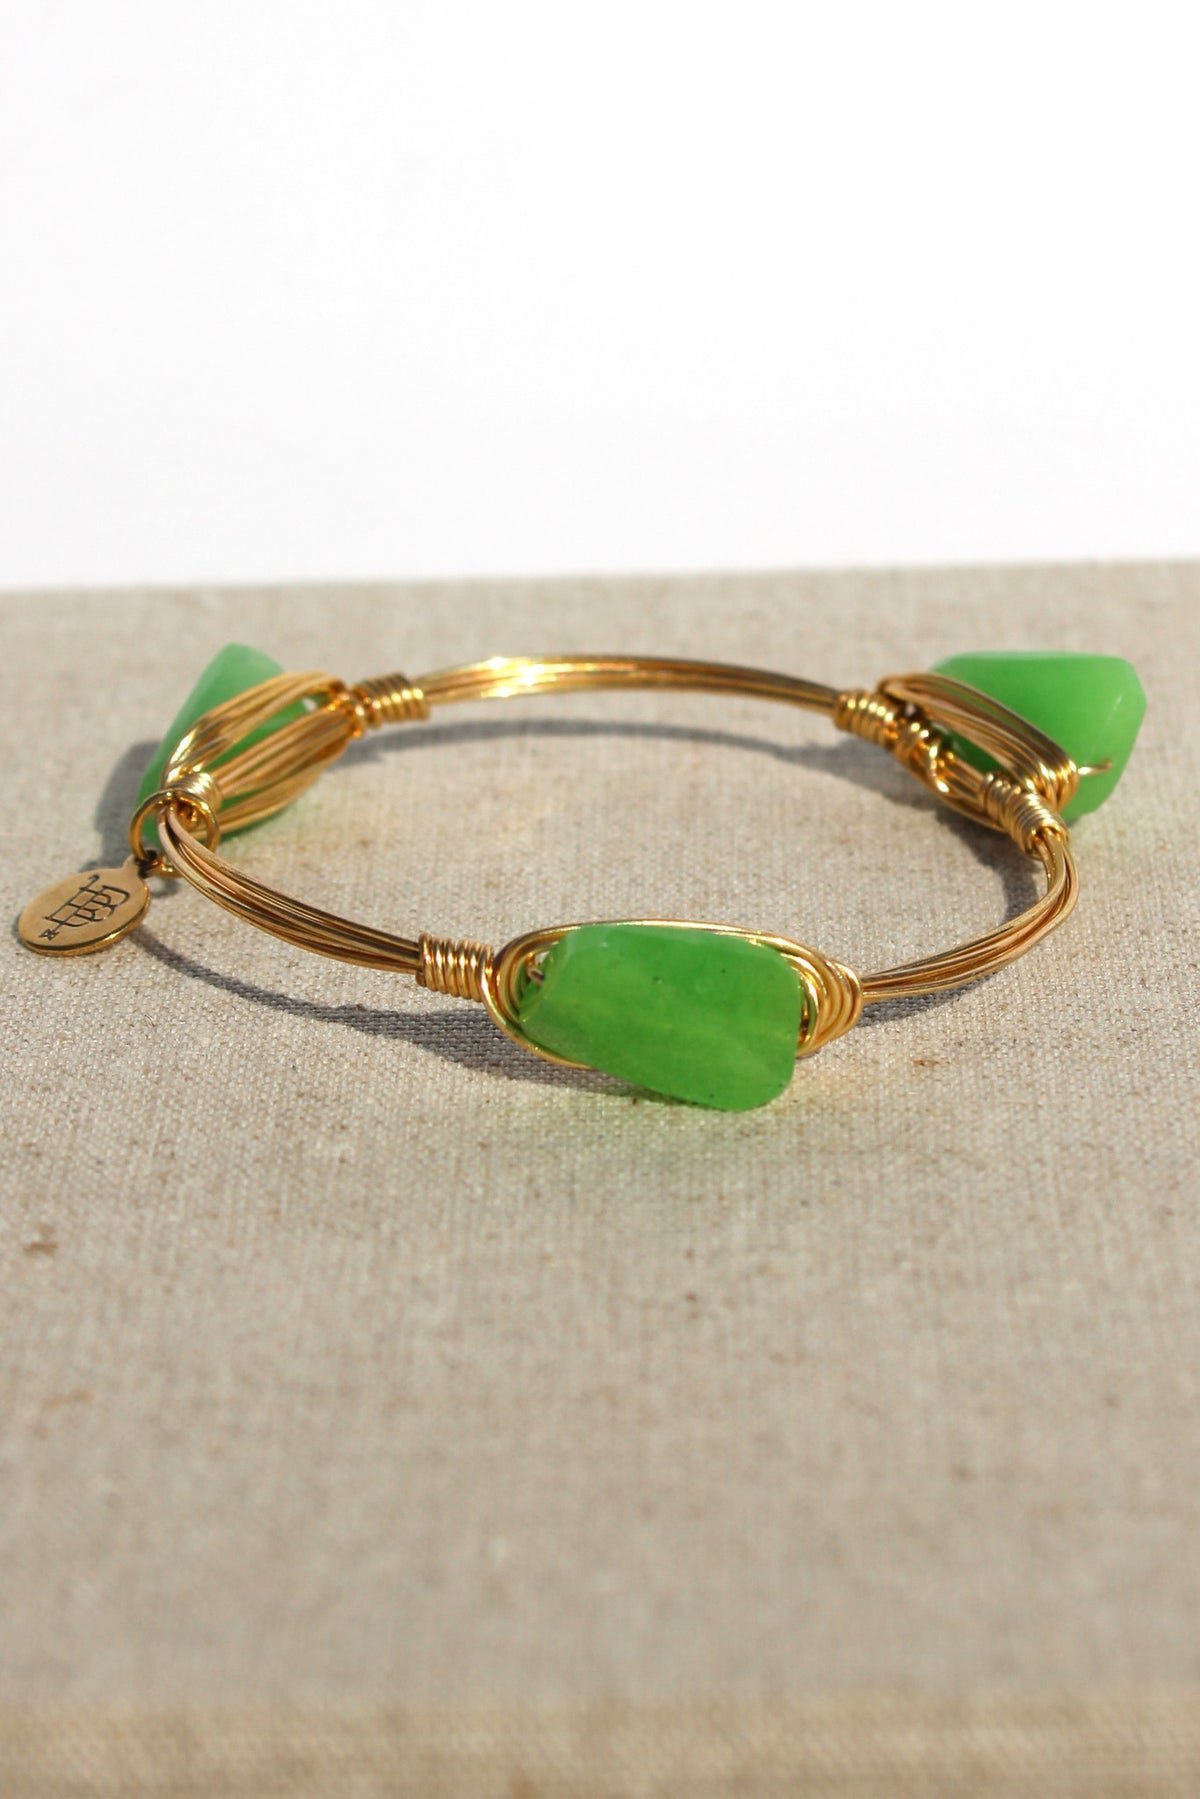 Bourbon and Boweties: Bangle, Green